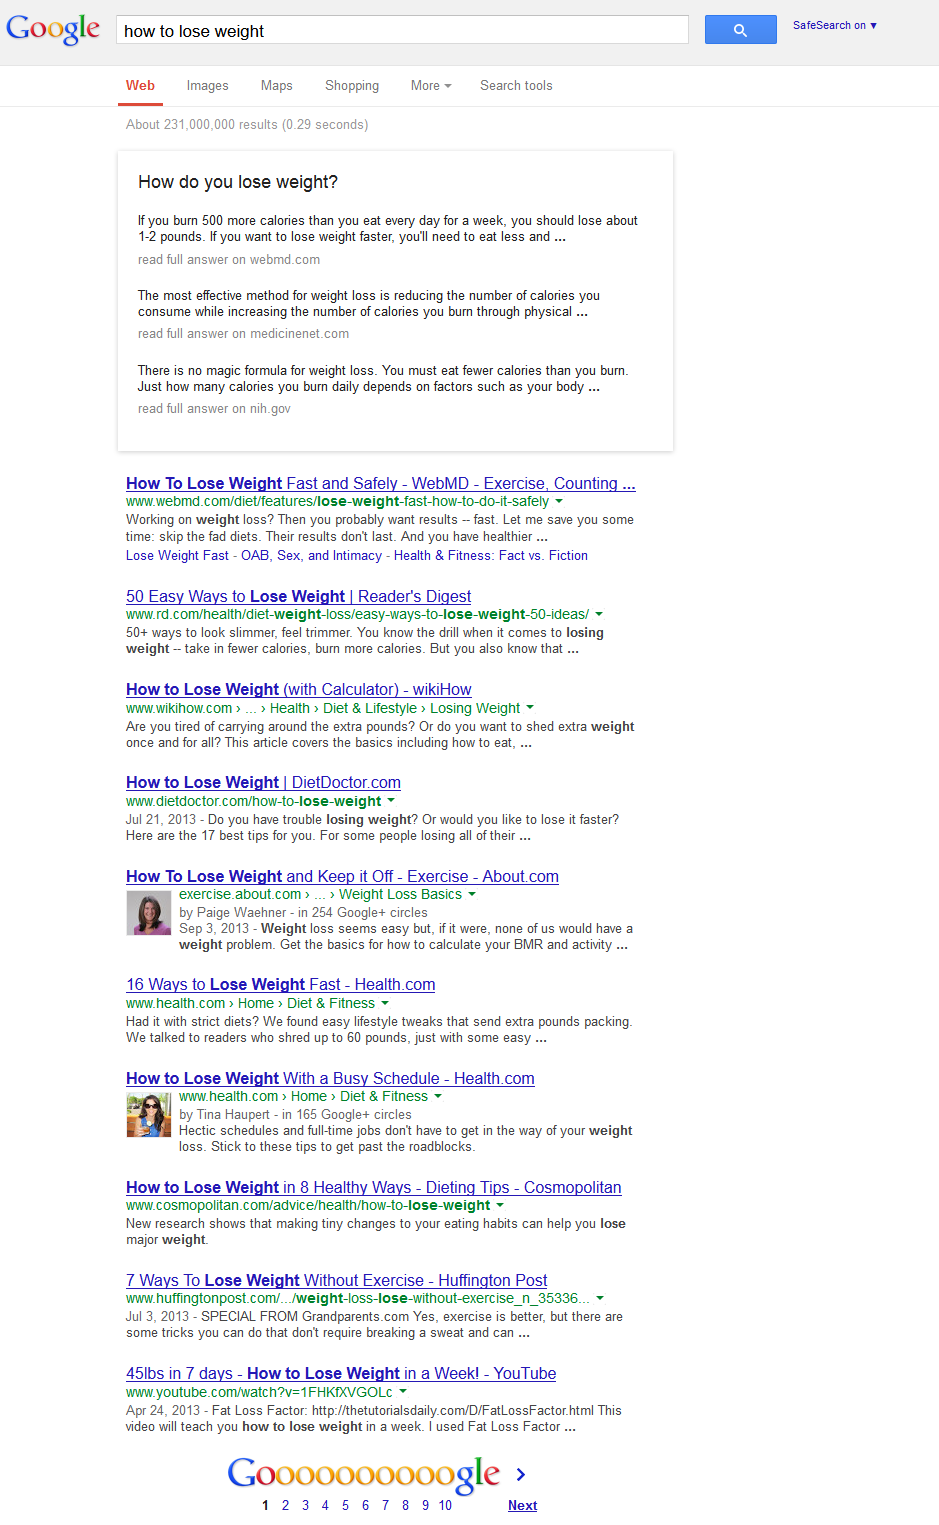 how-to-lose-weight-Google-Search-2013-09-26-21-41-24